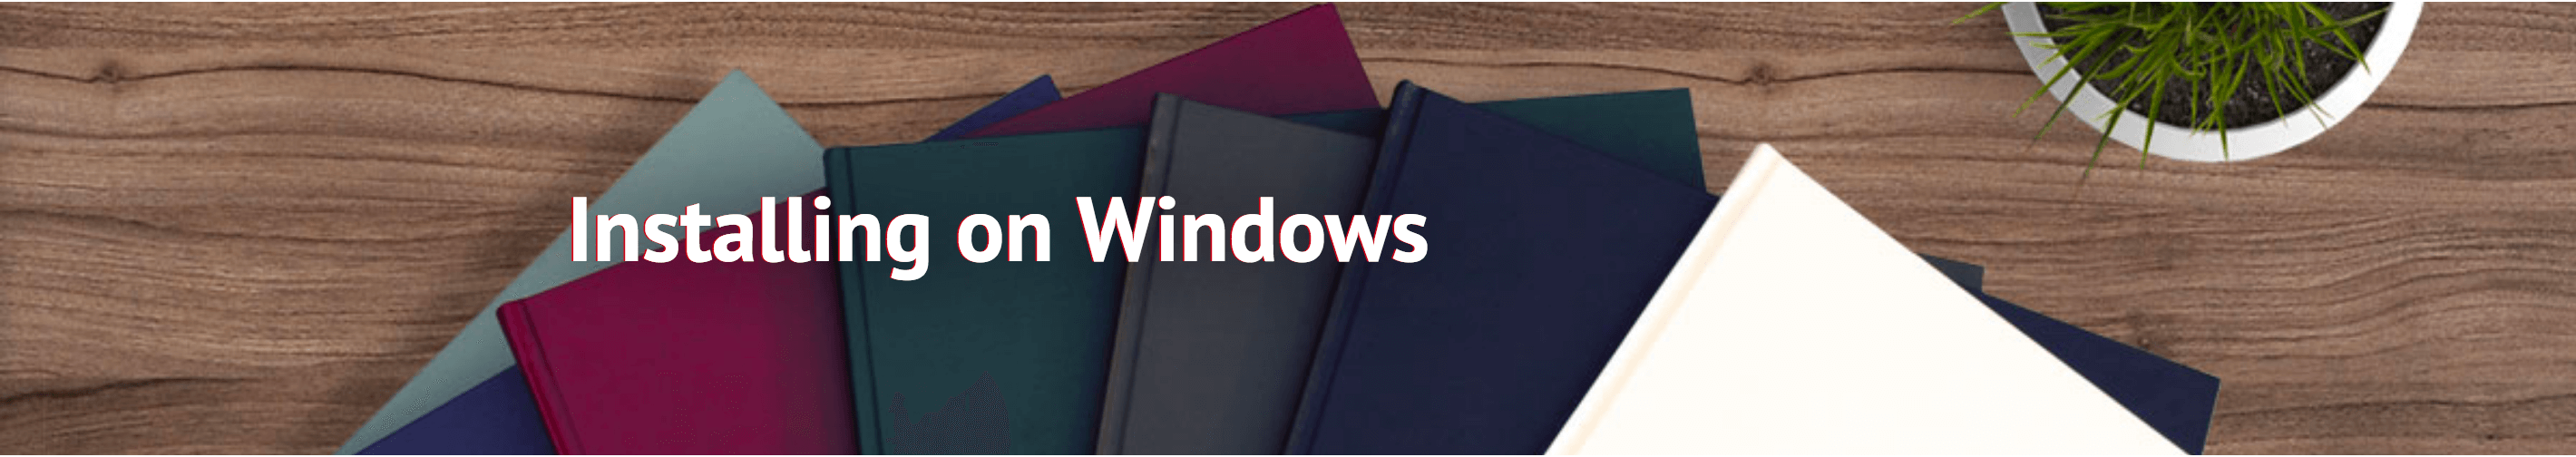 Photobooks install windows